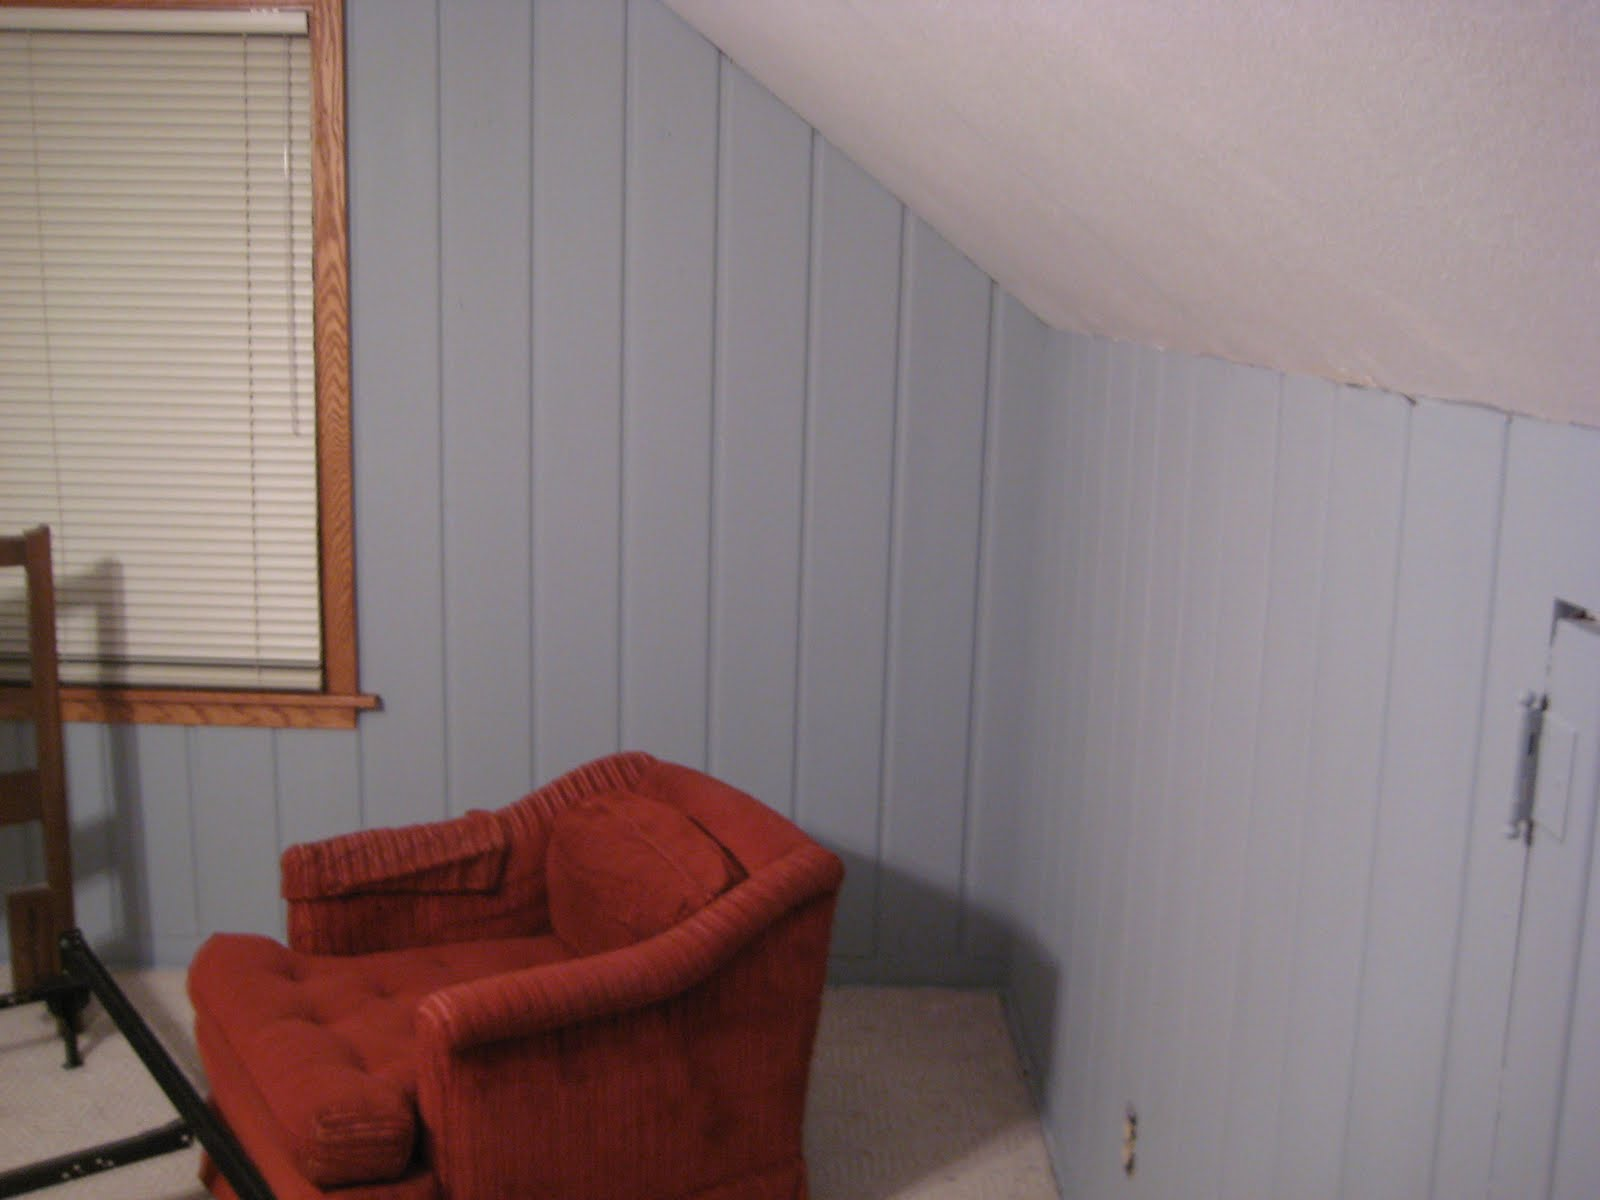 Ordinaire Painting Over Knotty Pine Paneling; Complete Master Bedroom Redo